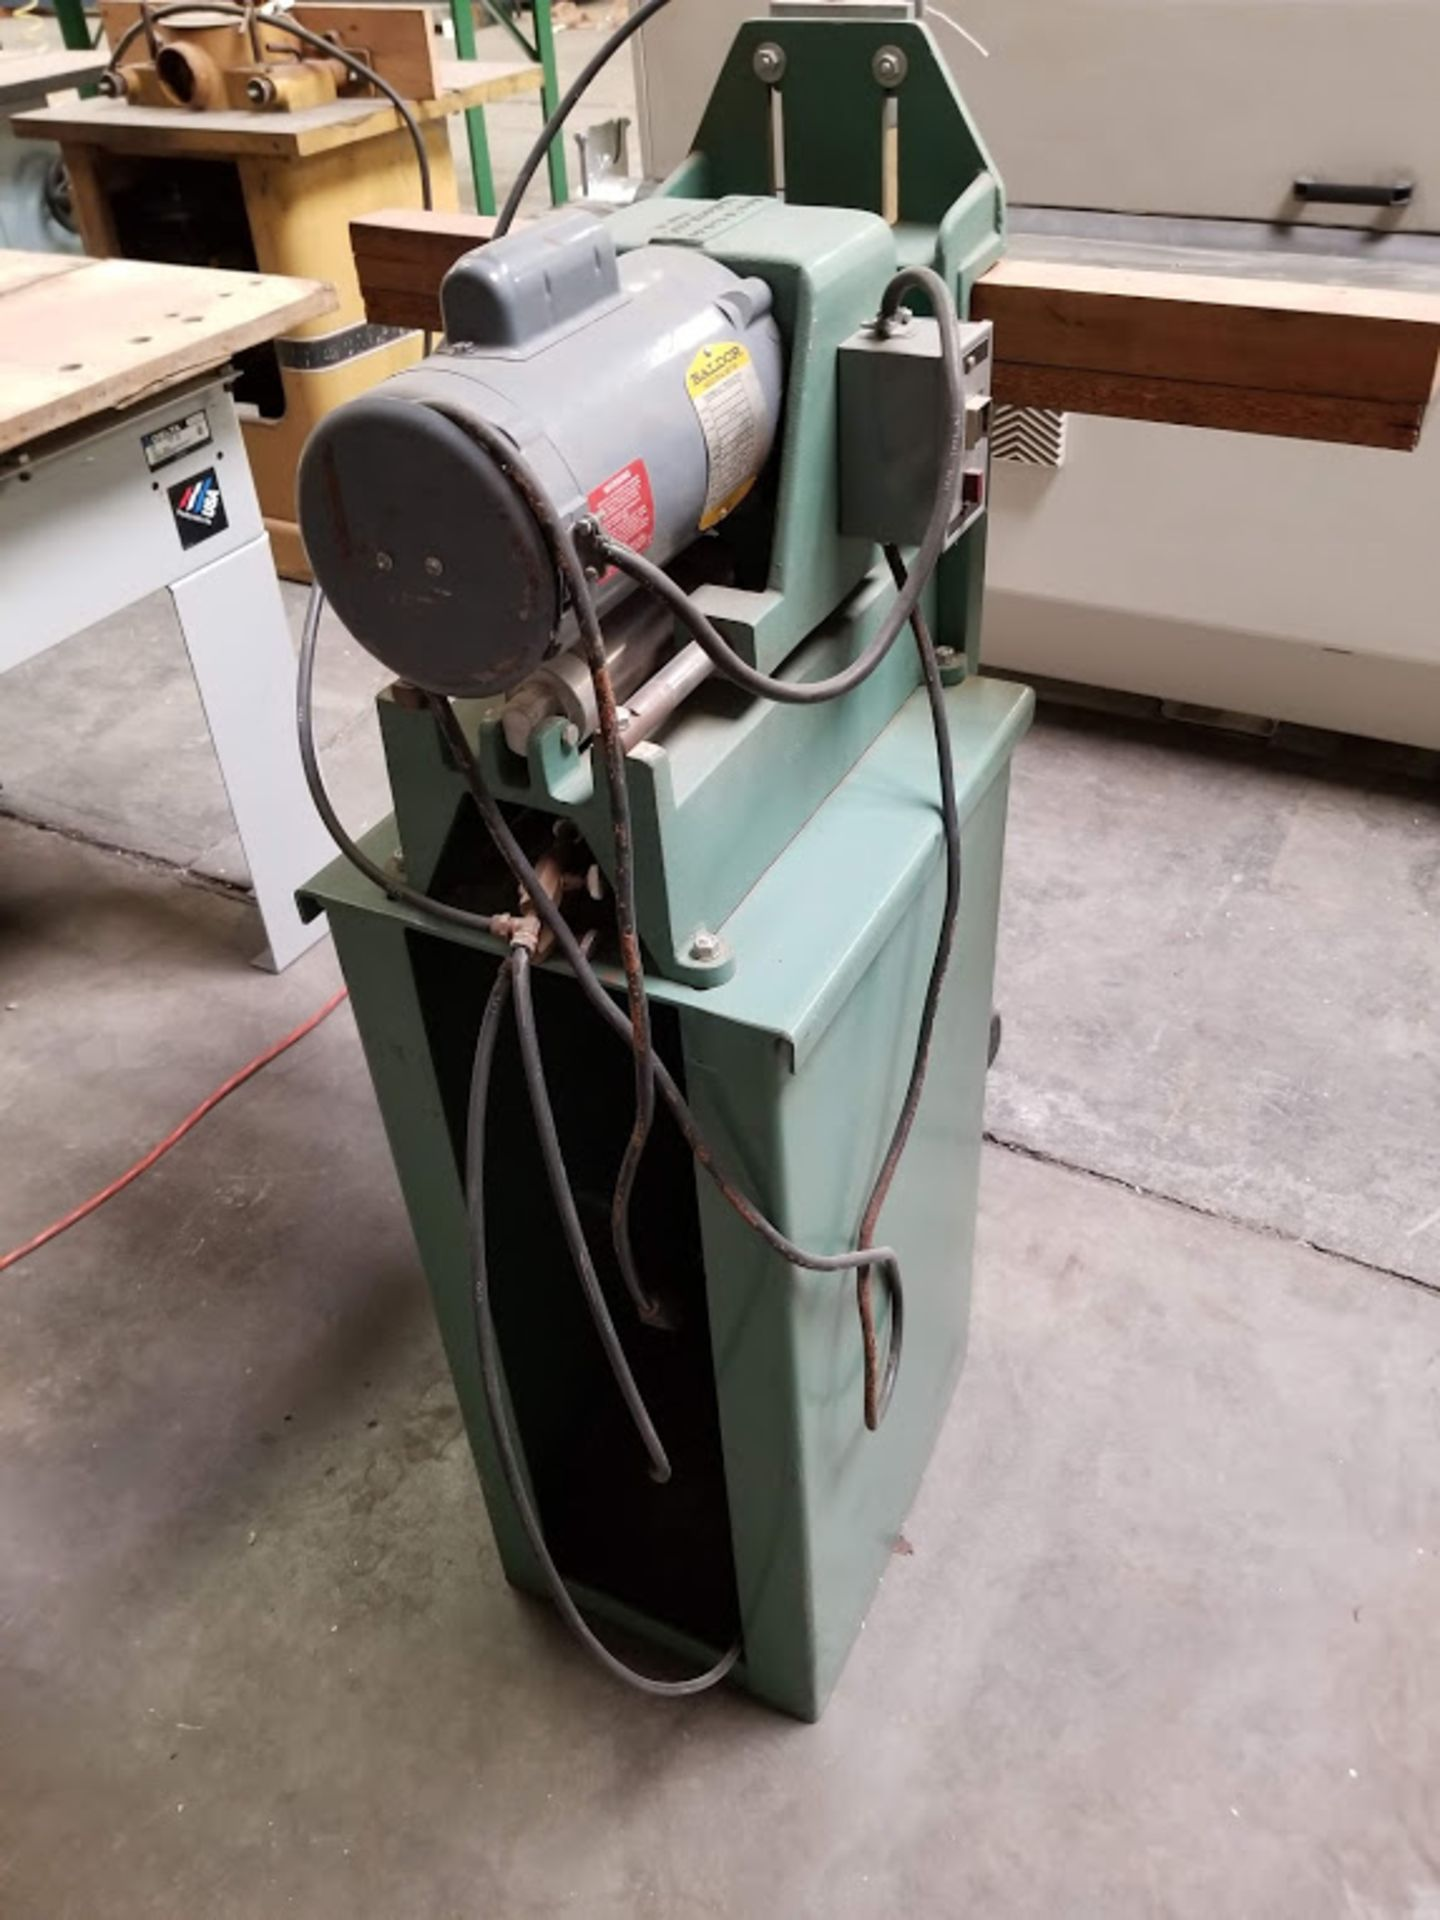 Ritter 1 Spindle Boring Machine, Pneumatic Foot Pedal, Baldor 3/4 HP 115/230 Volts 1 Phase Motor - Image 7 of 7